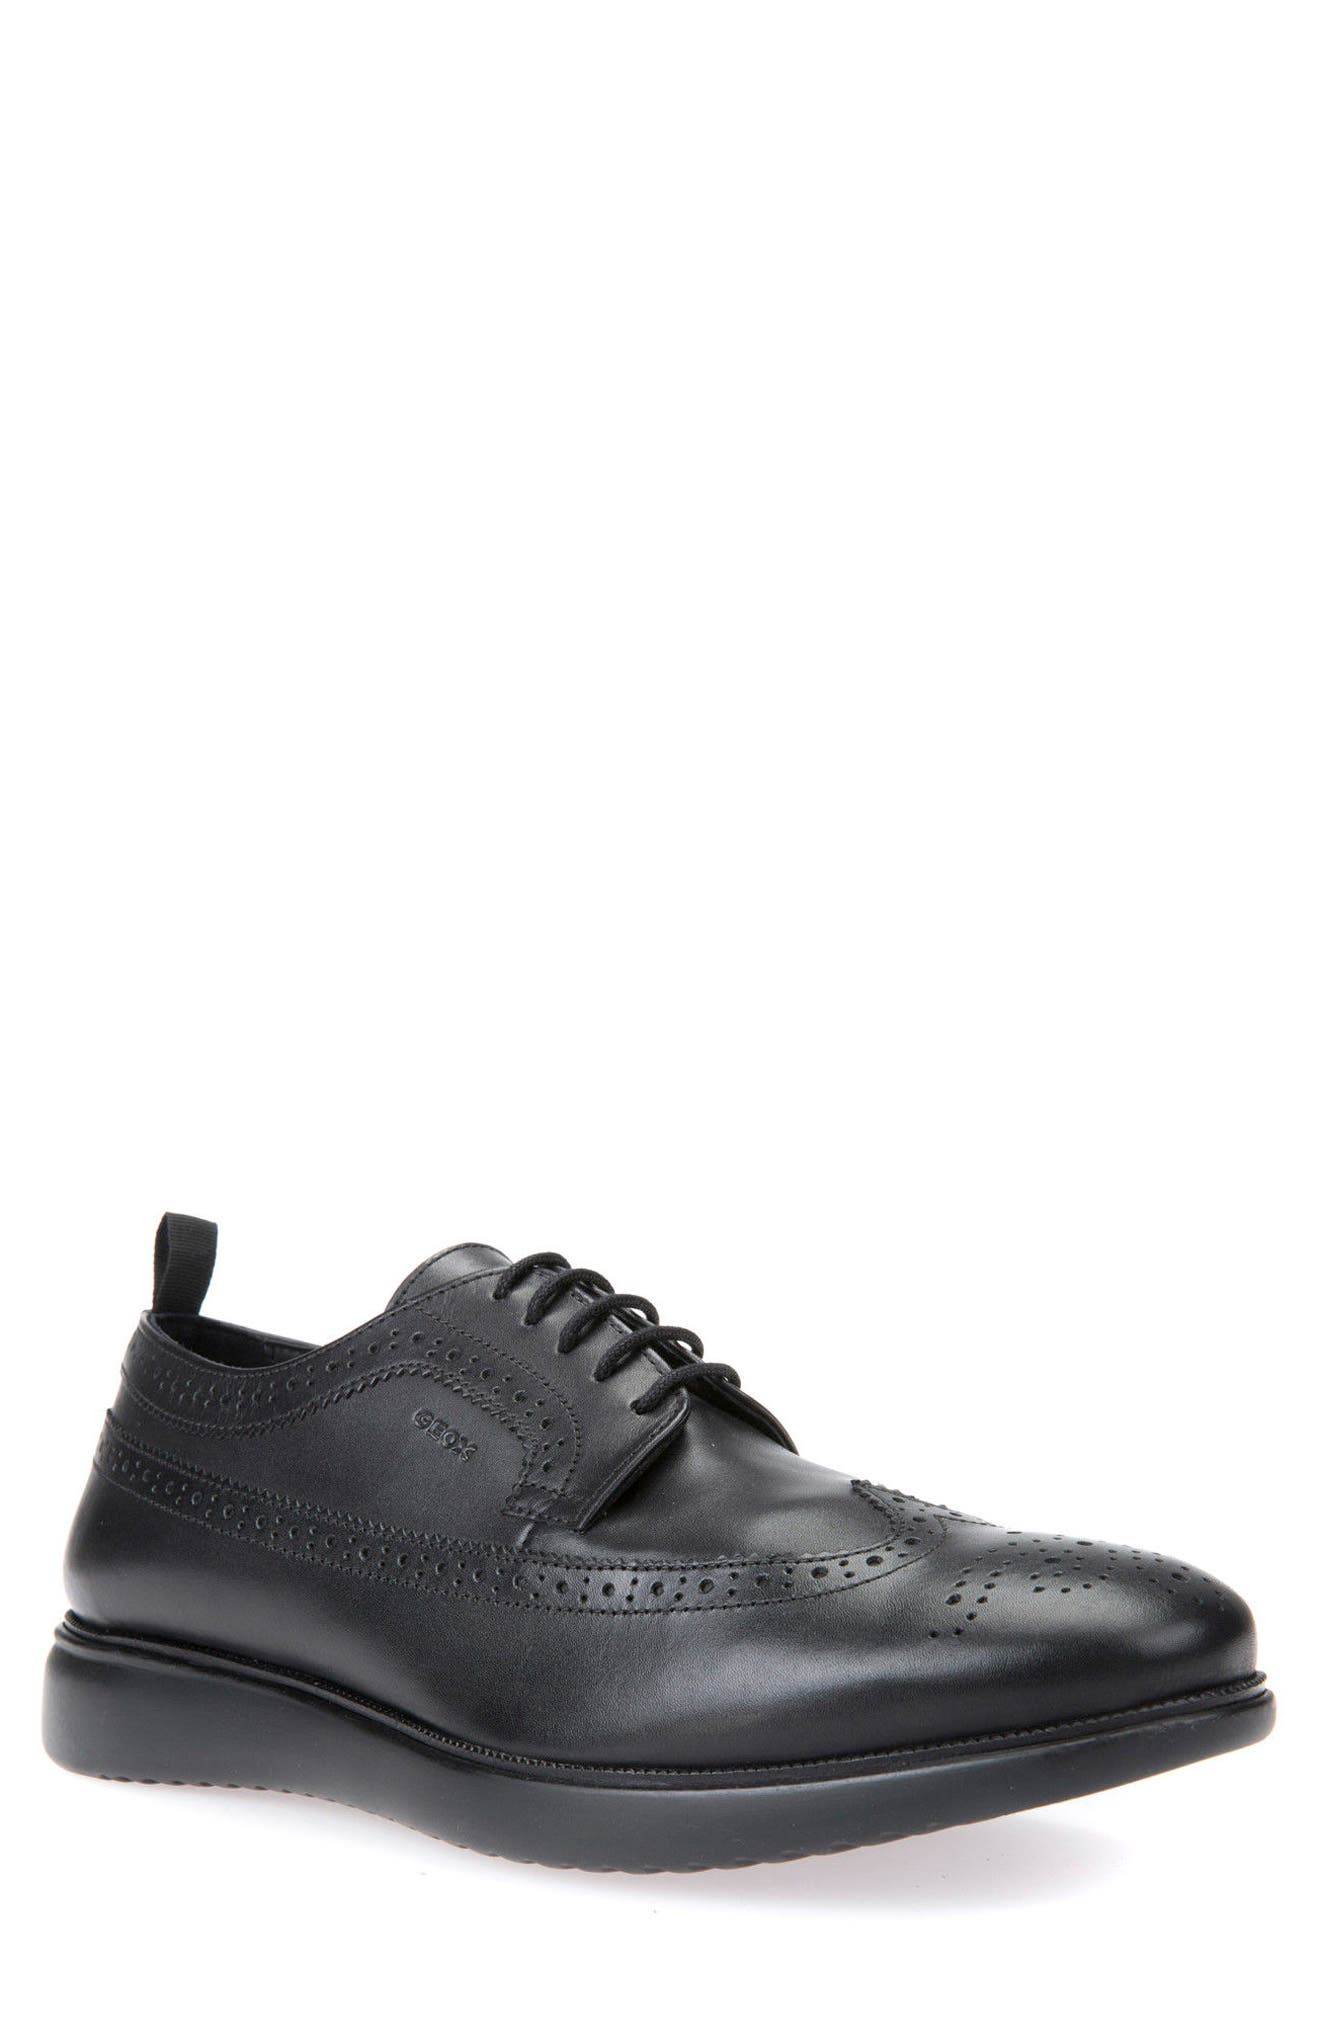 Winfred 3 Wingtip,                         Main,                         color, Black Leather